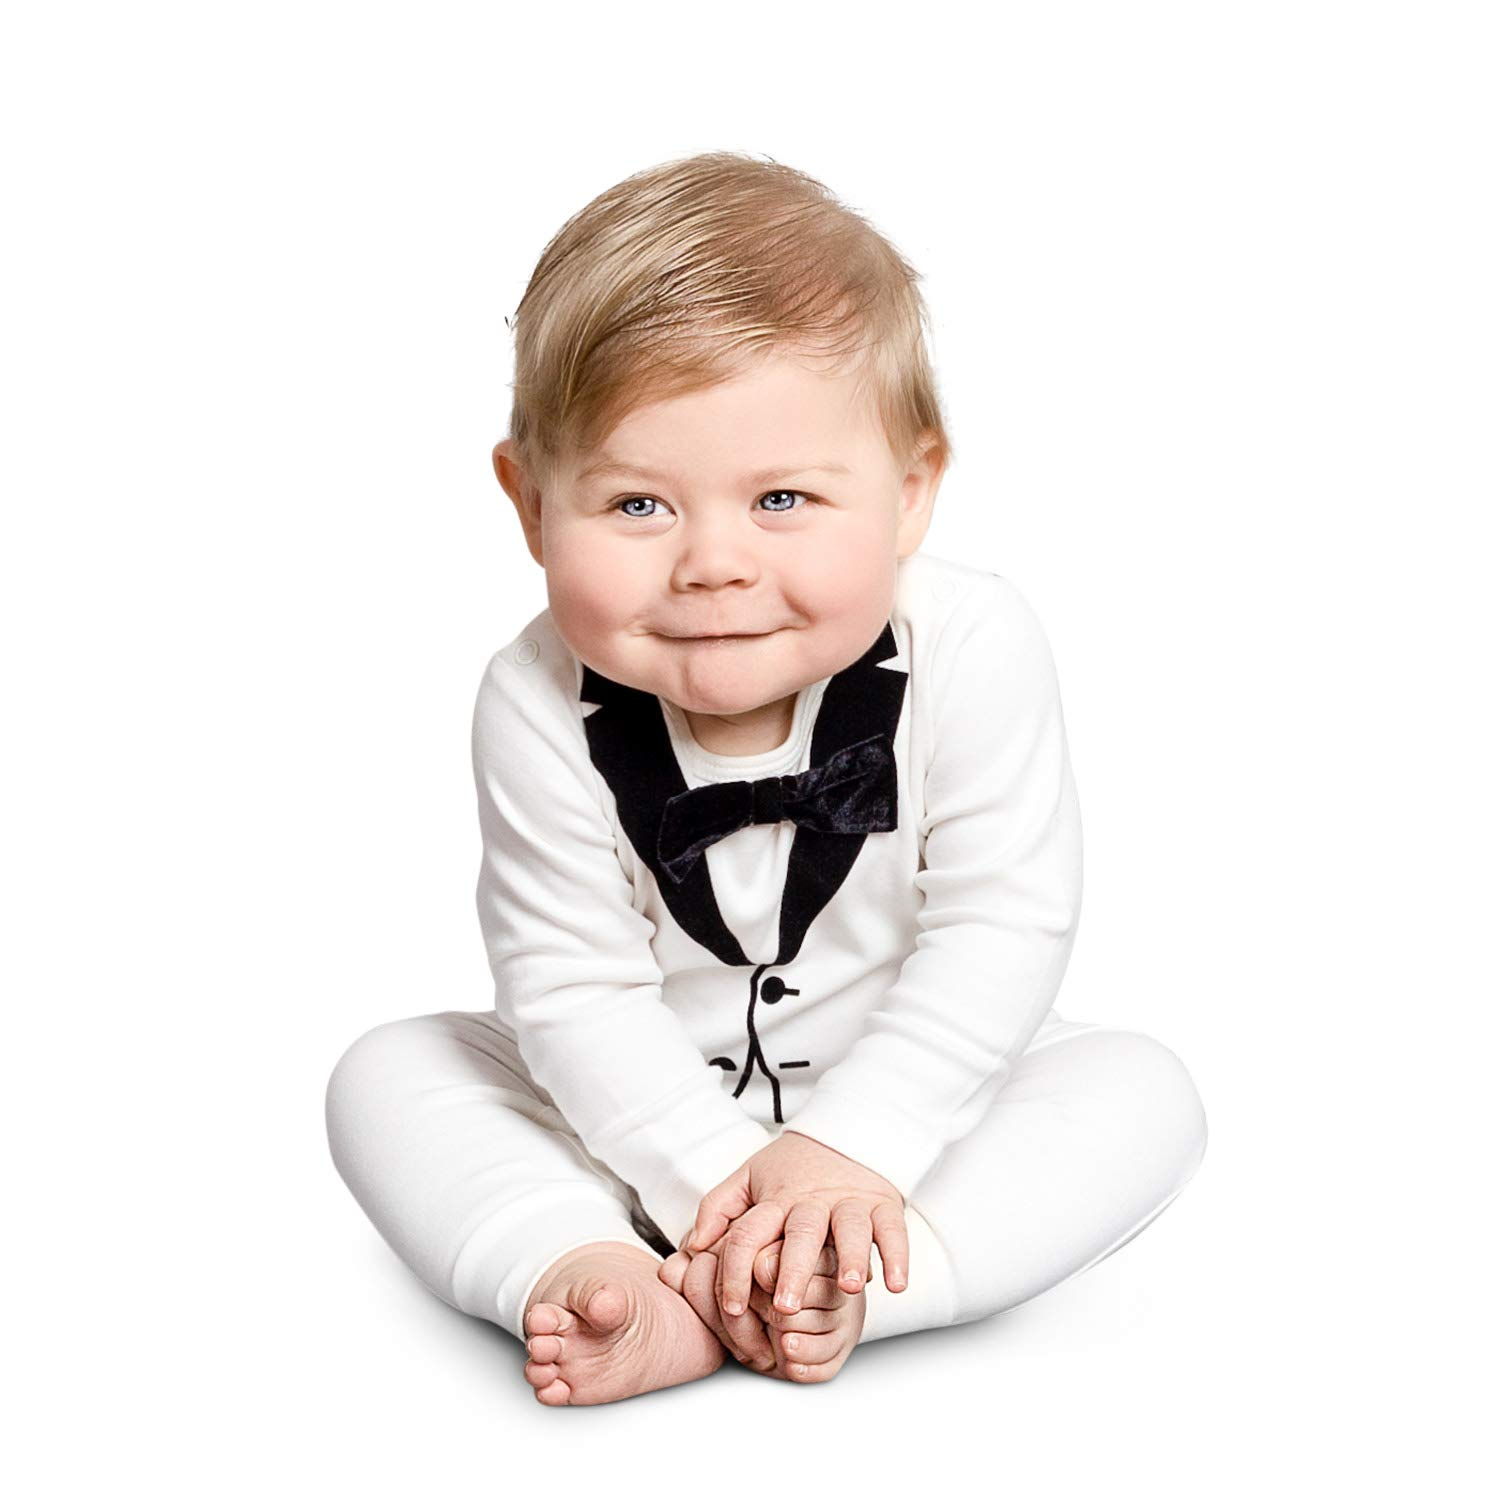 The Tiny Universe Tuxedo Onesie for Fancy Baby Boys, Satin Bow-Tie, Original Swedish Design (James Bond White, 6-9 Months (74)) by The Tiny Universe